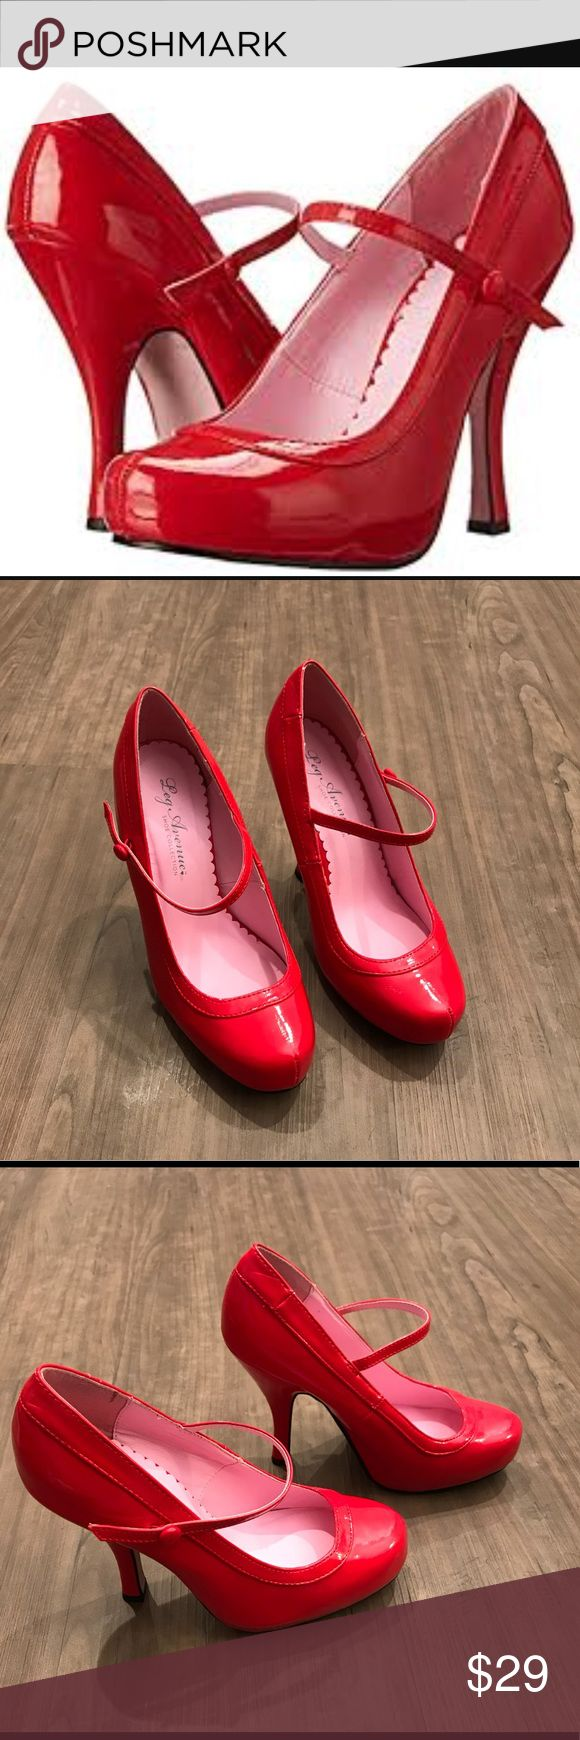 "Leg Avenue woman's Baby Doll Mary-Jane pump - Red Fun and fabulous Baby Doll Mary-Jane pump in Red. Shiny Cherry Red is sure to be a show stopper and head turner!  Synthetic Synthetic sole Heel measures approximately 4 1/4"" Platform measures approximately 1/2"" Red patent leather MaryJanes pumps with 1"" concealed P/F and 4"" heels. Leg Avenue Shoes Heels"